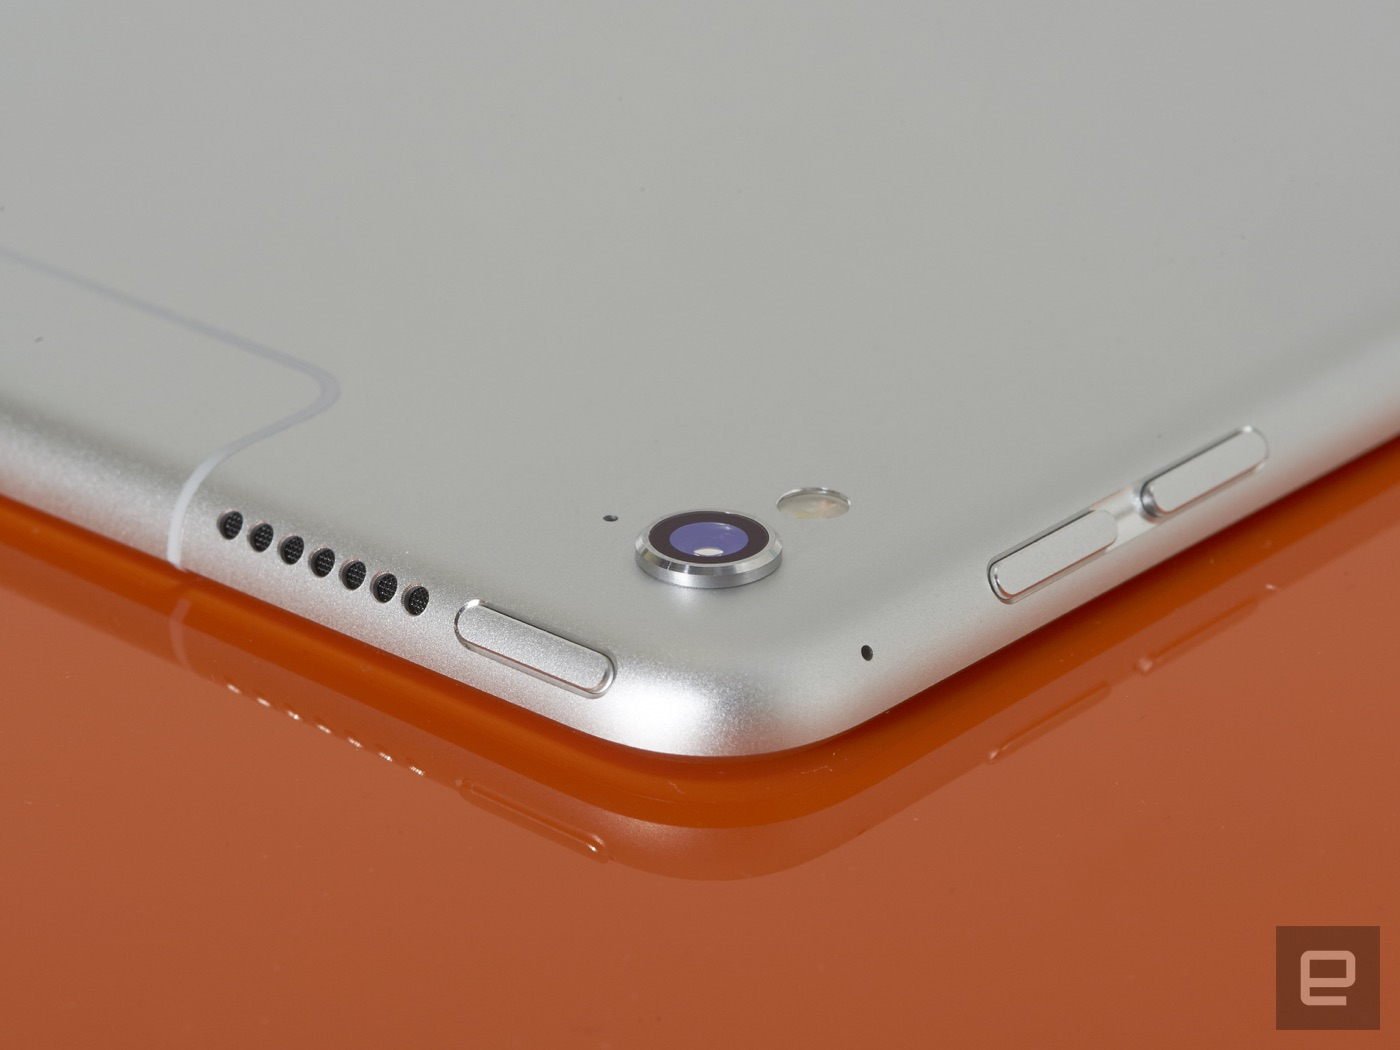 Ipad Pro 97 Review Apples Best Tablet But It Wont Replace A Laptop Apple Mini Retina 32gb Wifi Cell Silver Curiously The Inch Model Is In Some Ways More Impressive Than Original For Starters Features Iphone 6ss 12 Megapixel Rear Camera With